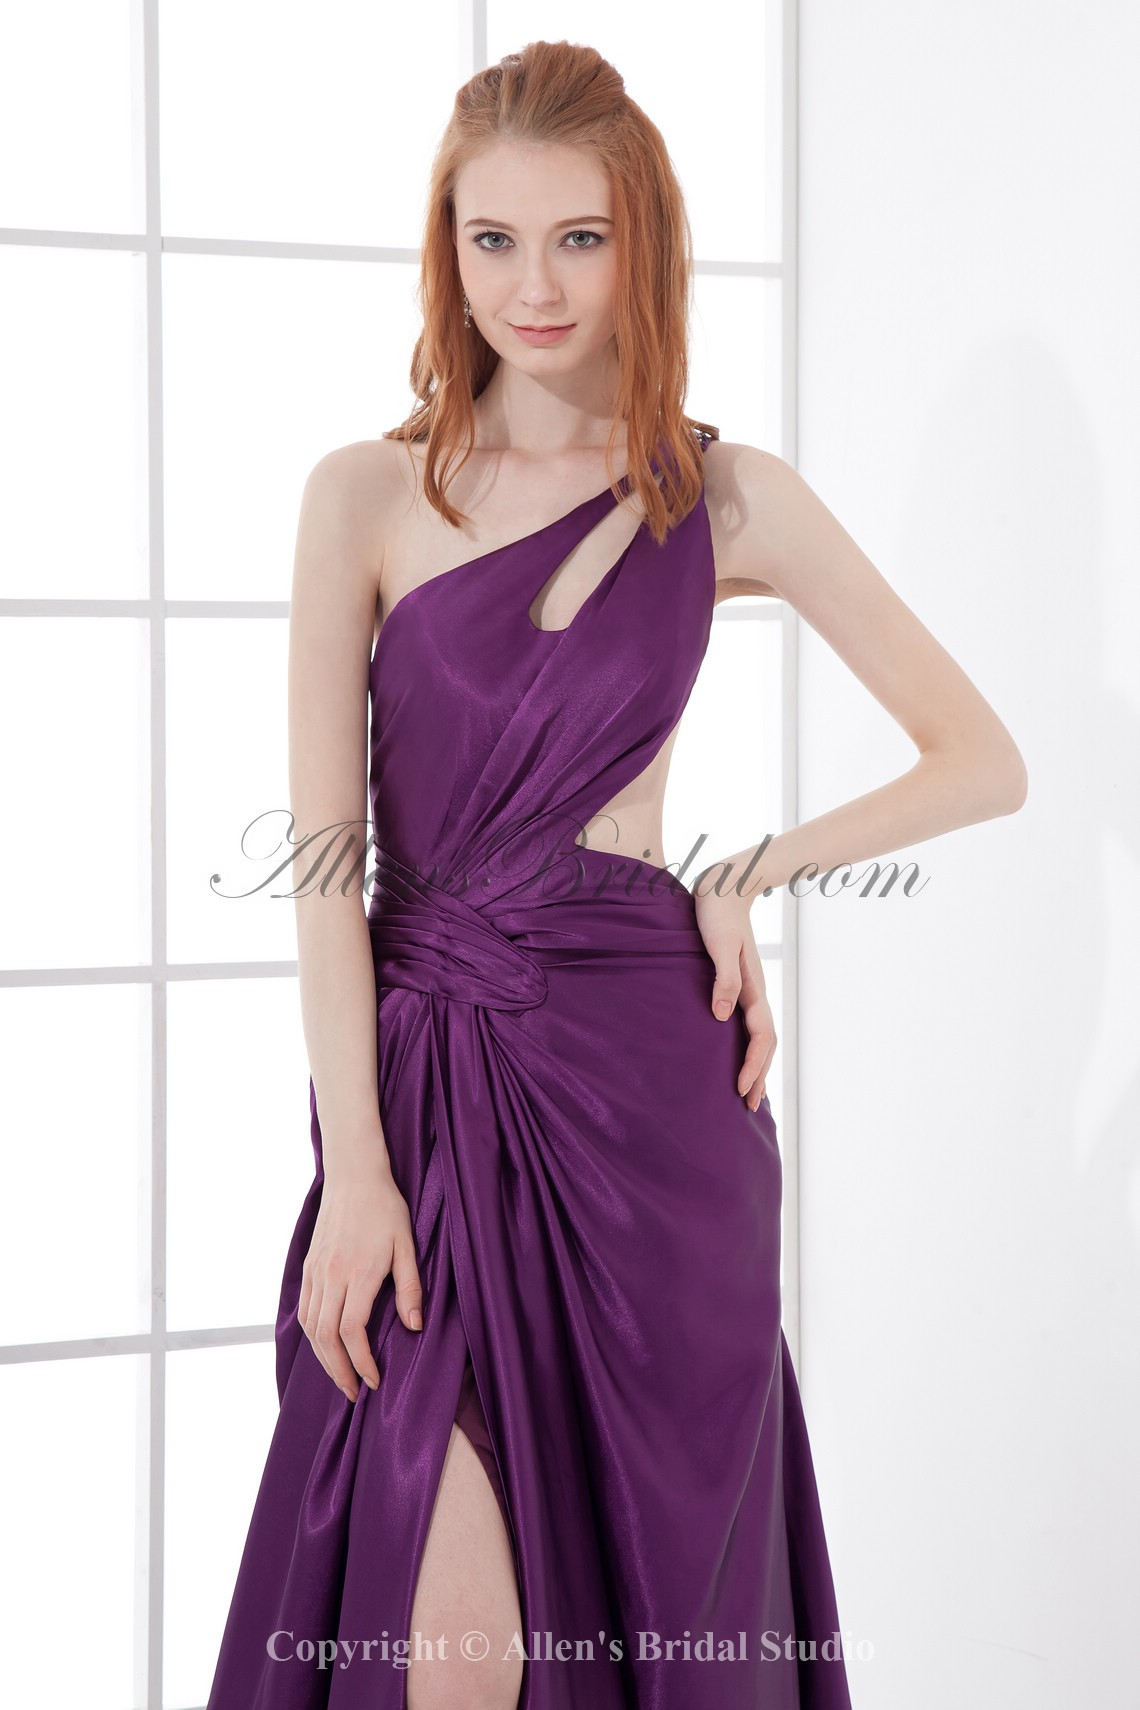 /66-524/satin-one-shoulder-ankle-length-a-line-prom-dress.jpg